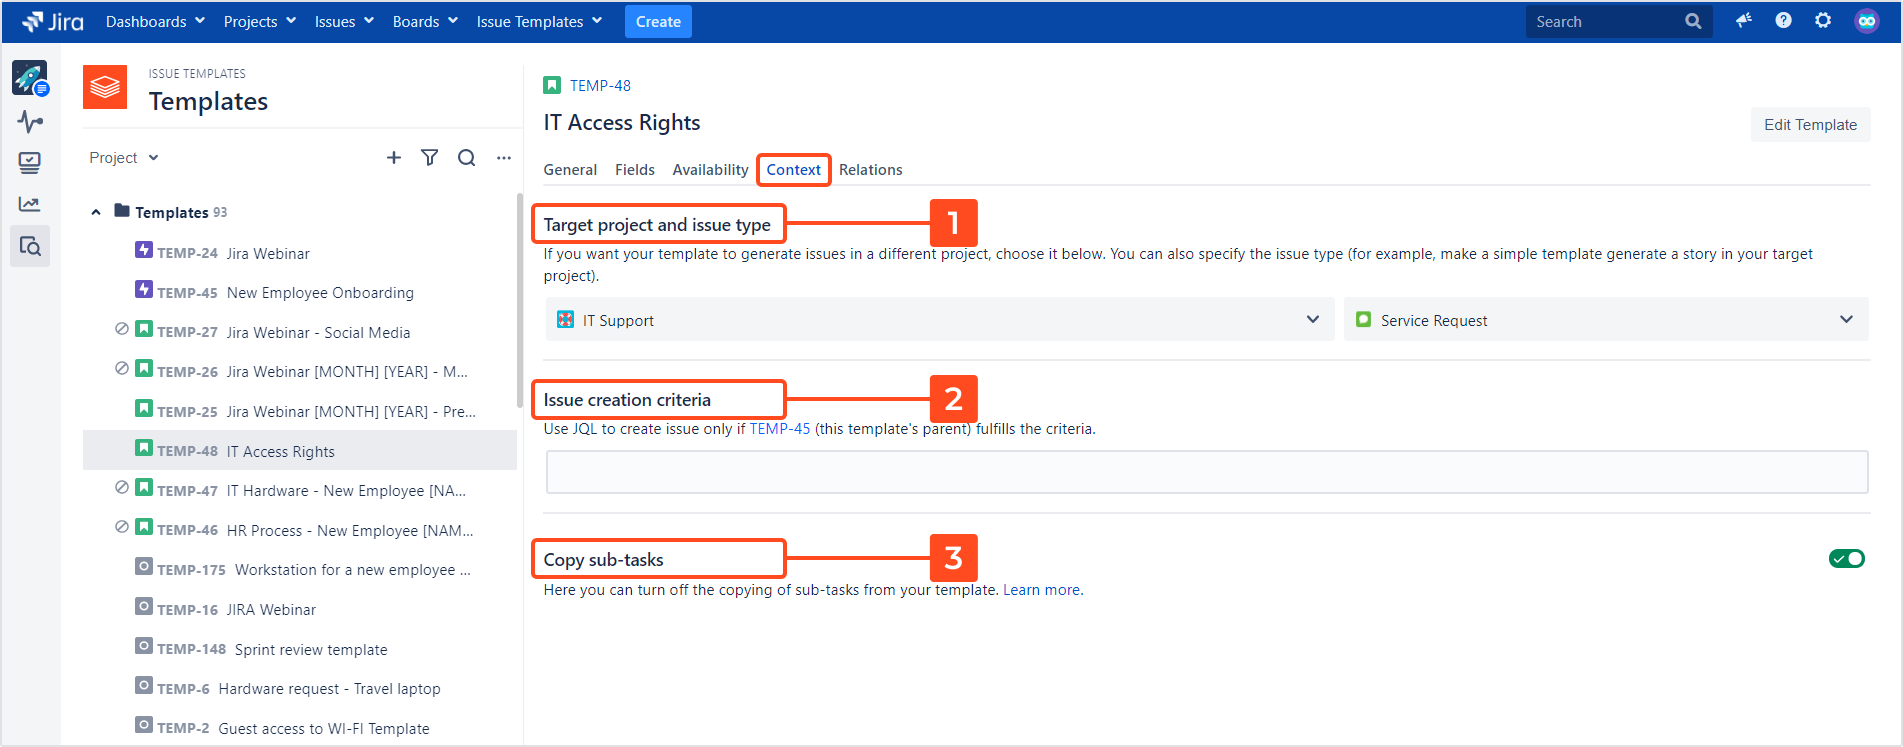 Issue Templates for Jira - Template Details: Context